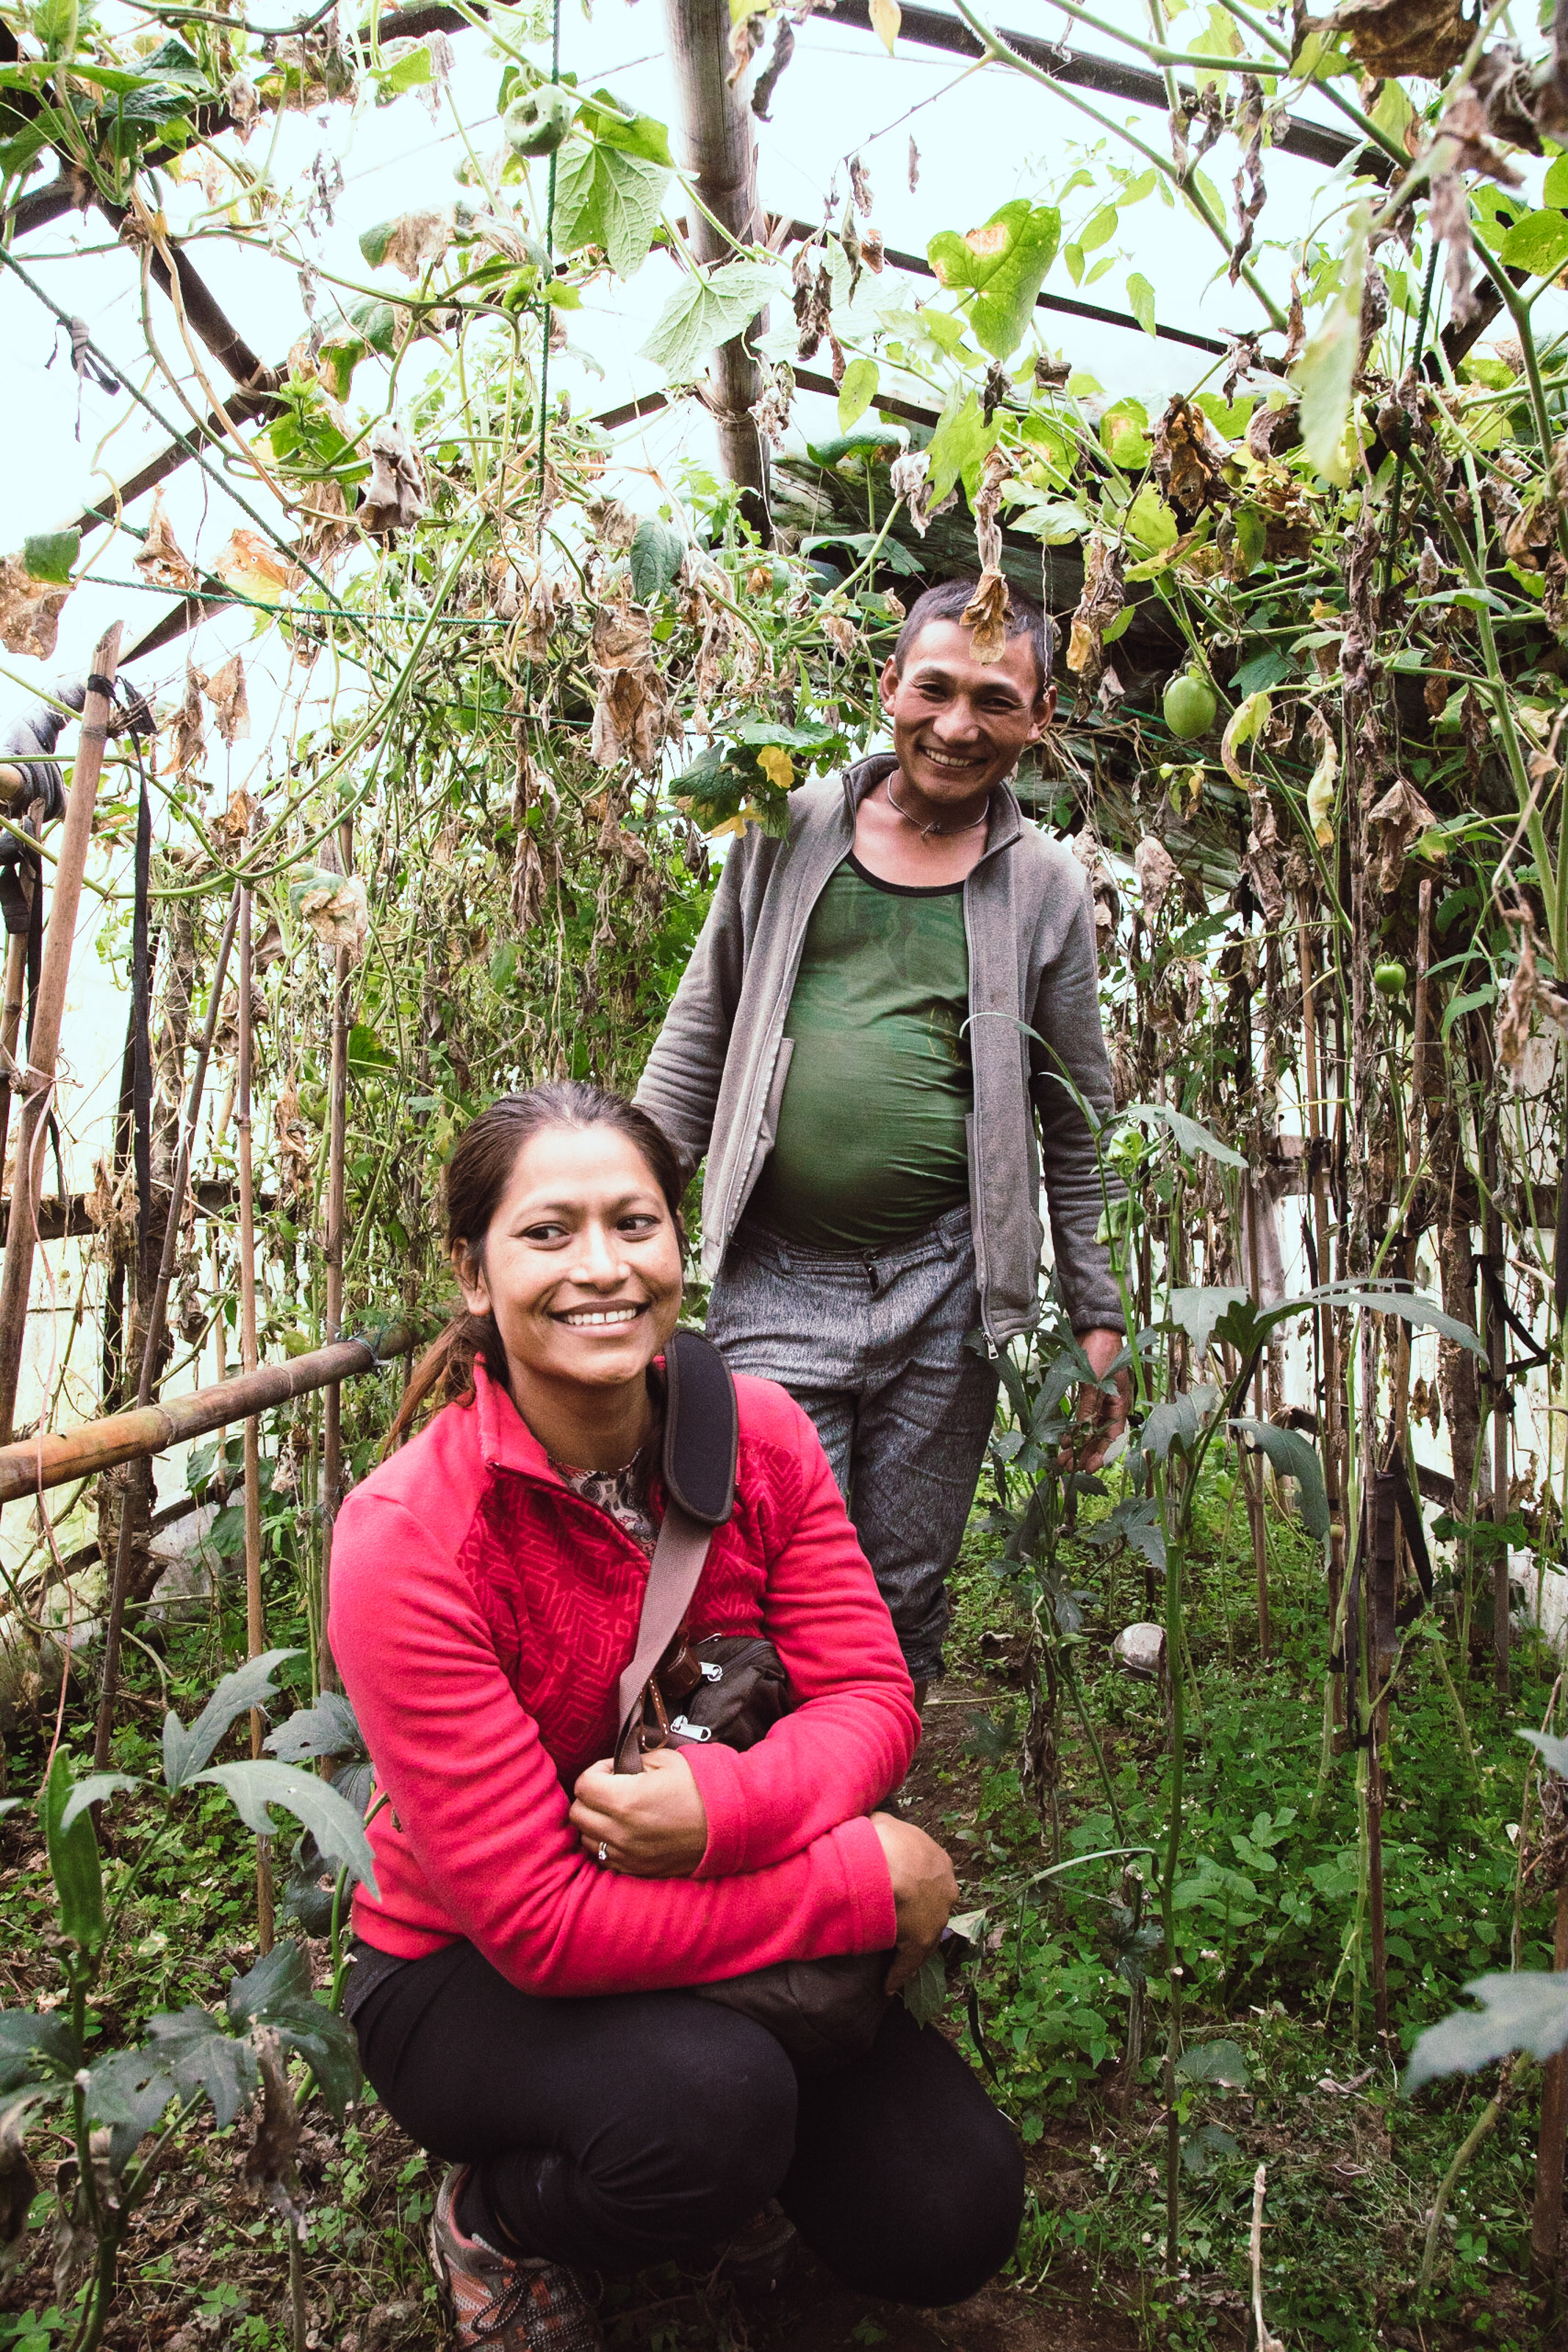 We are happy to se the great use of these greenhouse we supported 2 years earlier.